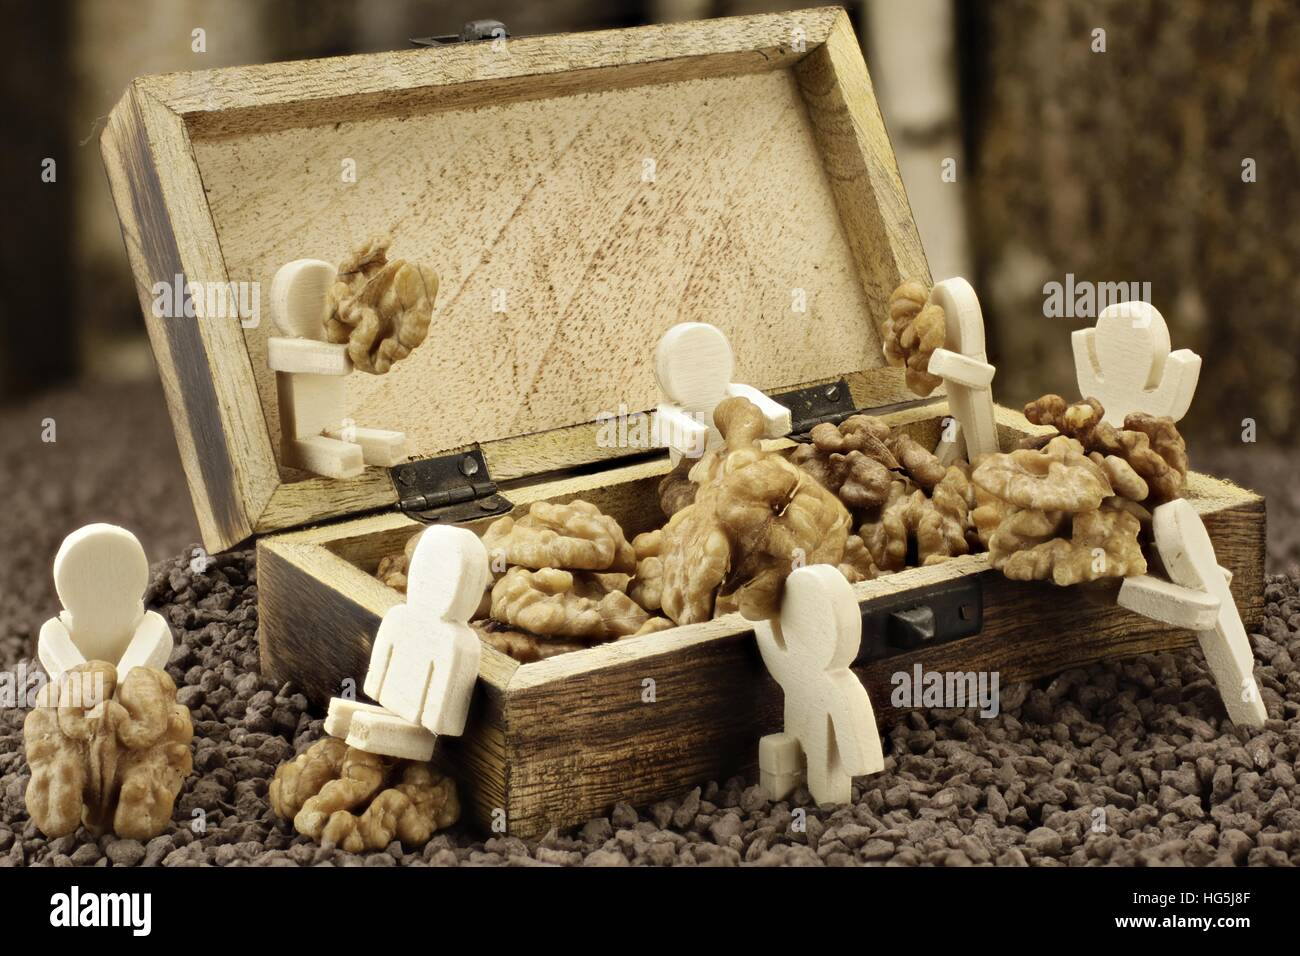 Males lay down a supply of walnuts Stock Photo